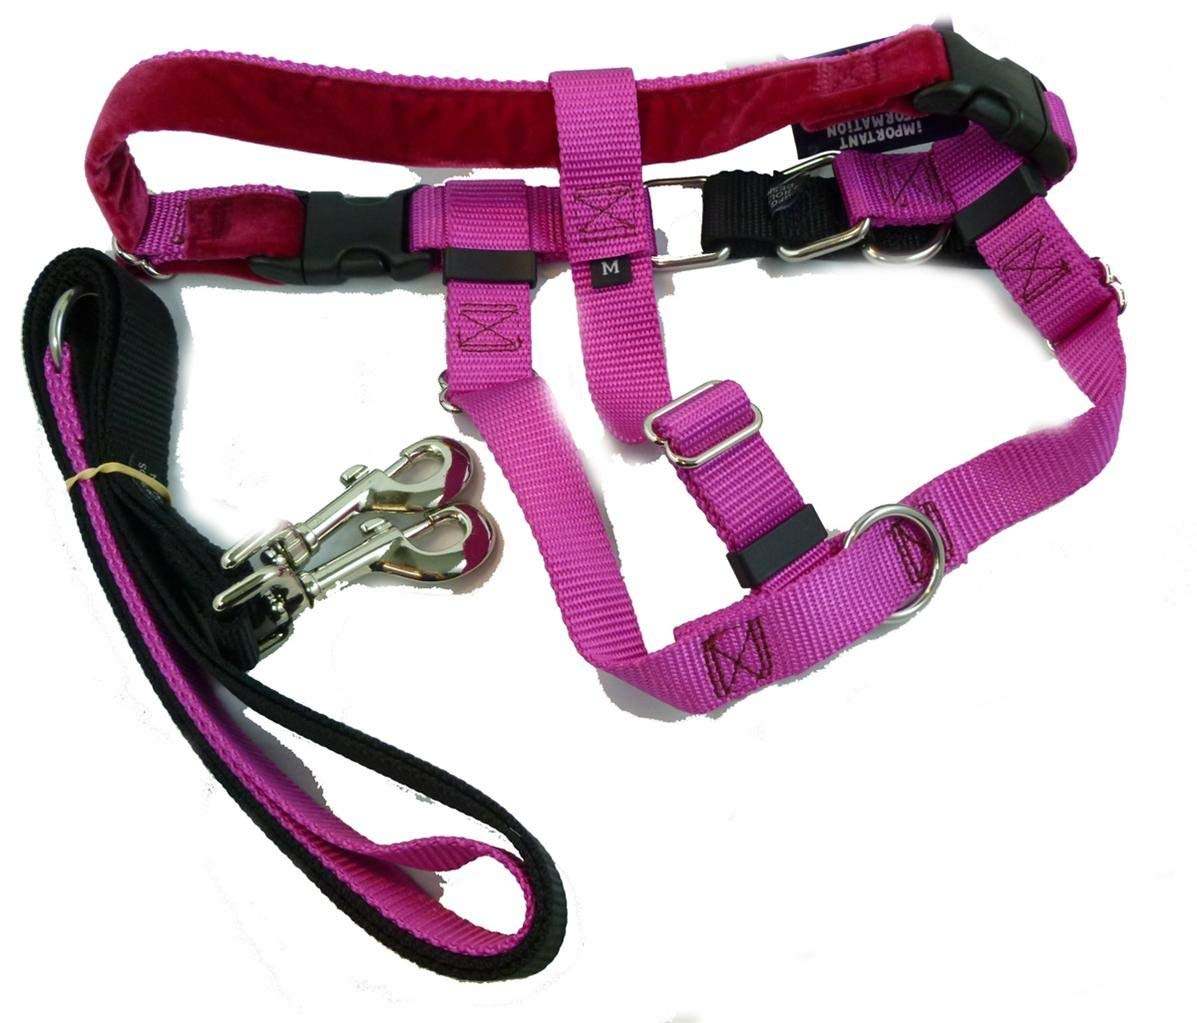 Raspberry XX-Large Raspberry XX-Large 2 Hounds Design PK XXL RASP Freedom No-Pull Dog Harness with Leash, (1  Wide), Raspberry, XX-Large